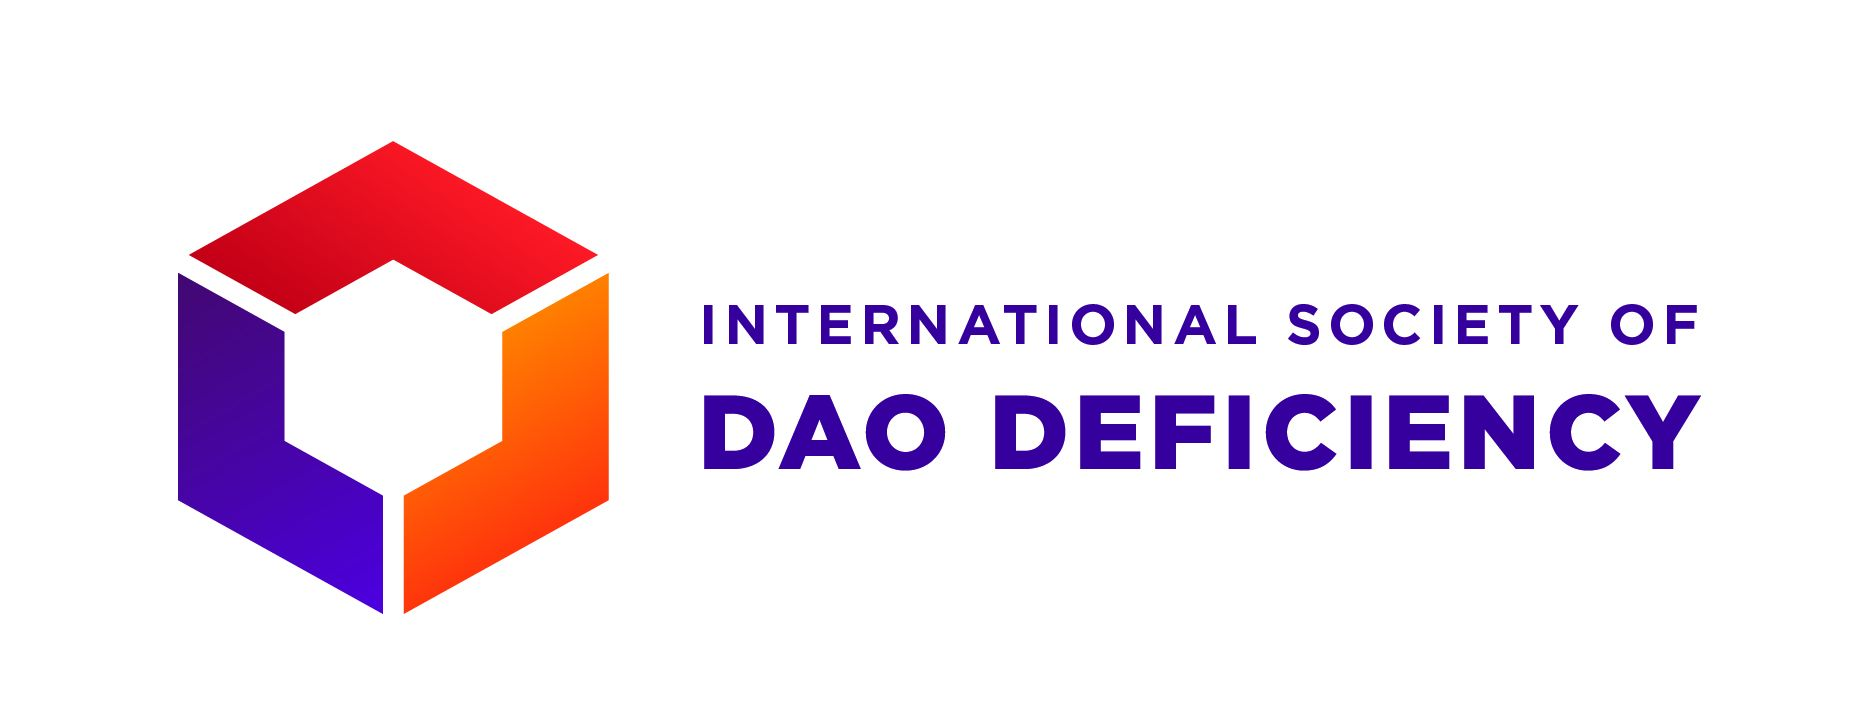 Foto de International Society of DAO Deficiency